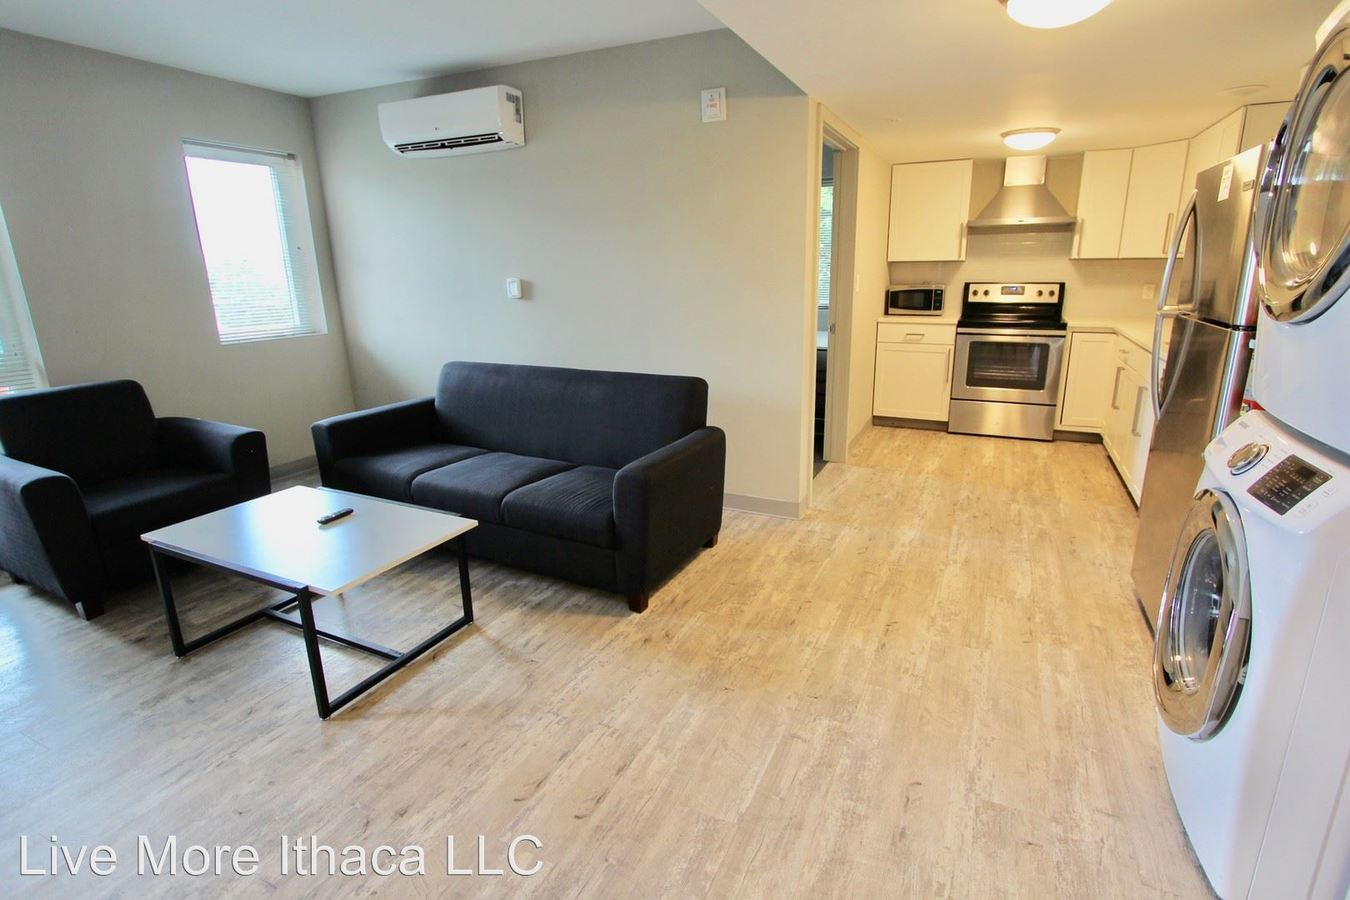 3 Bedrooms 2 Bathrooms Apartment for rent at 112 Summit Ave in Ithaca, NY